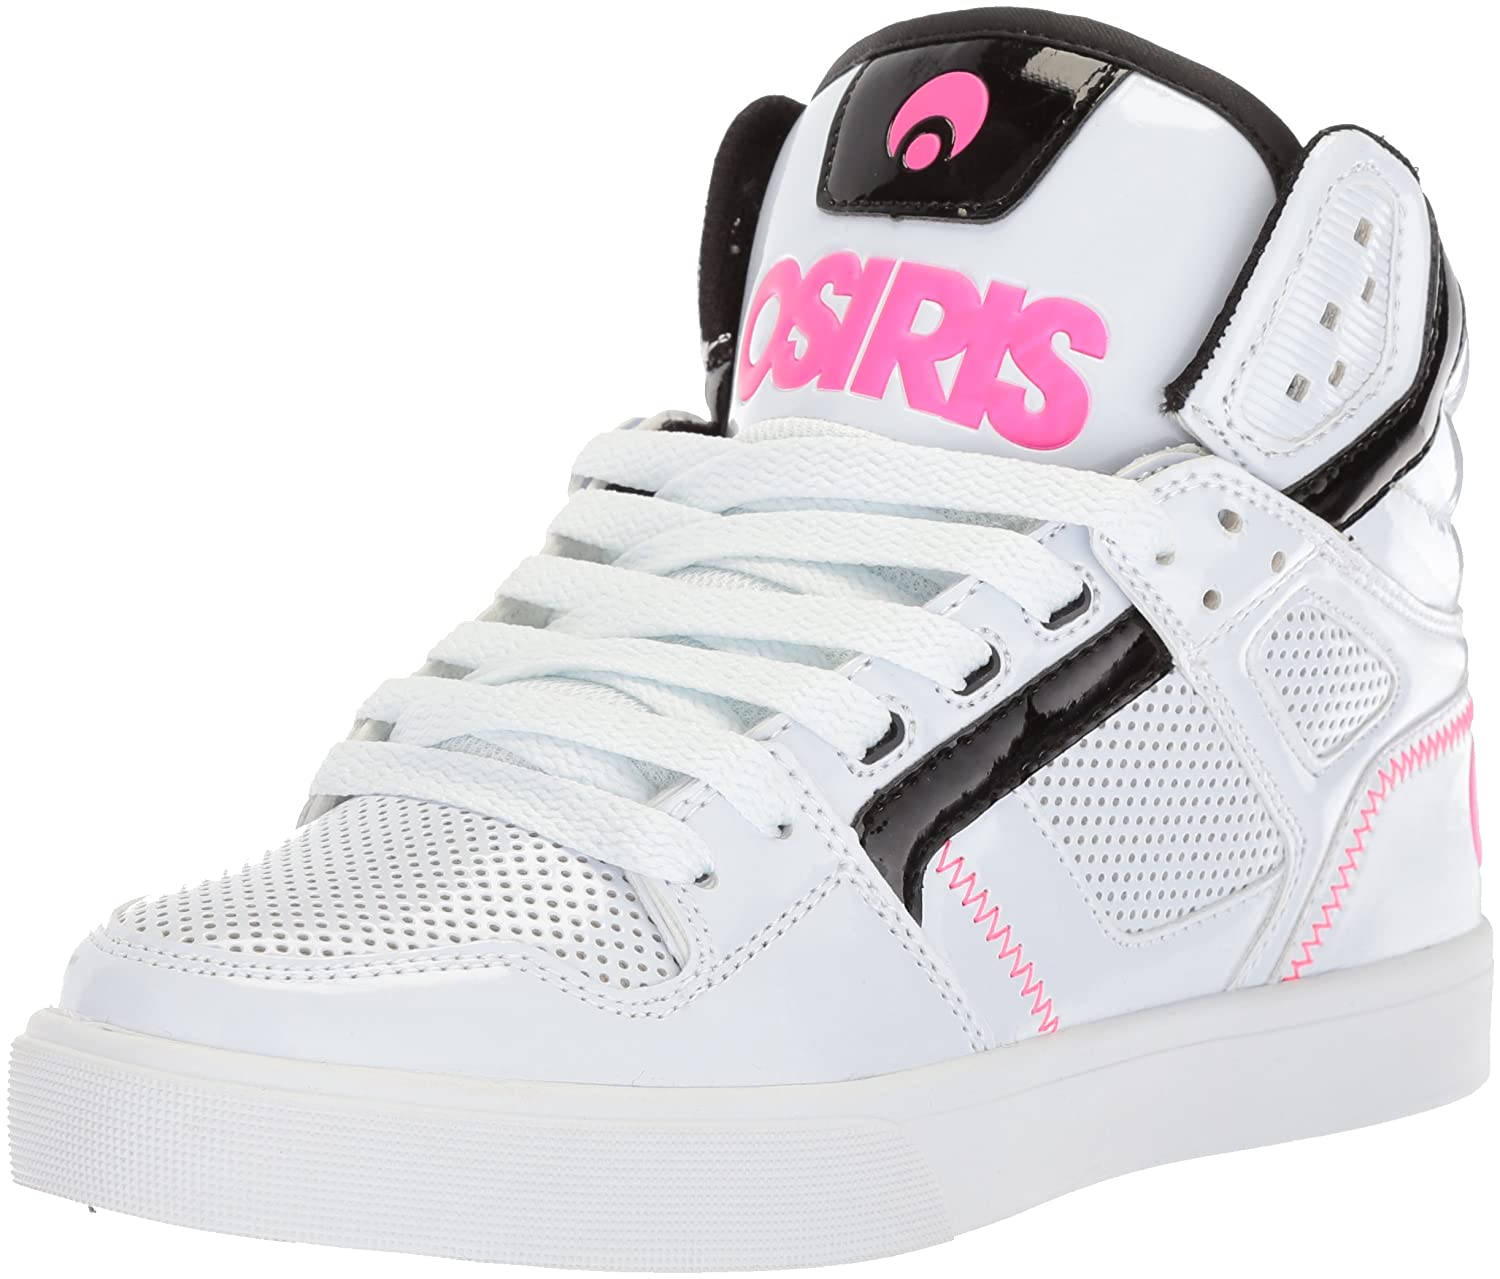 Osiris Women's Clone Skate Shoe B0746T5YBX 7 B(M) US|White/Black/Pink